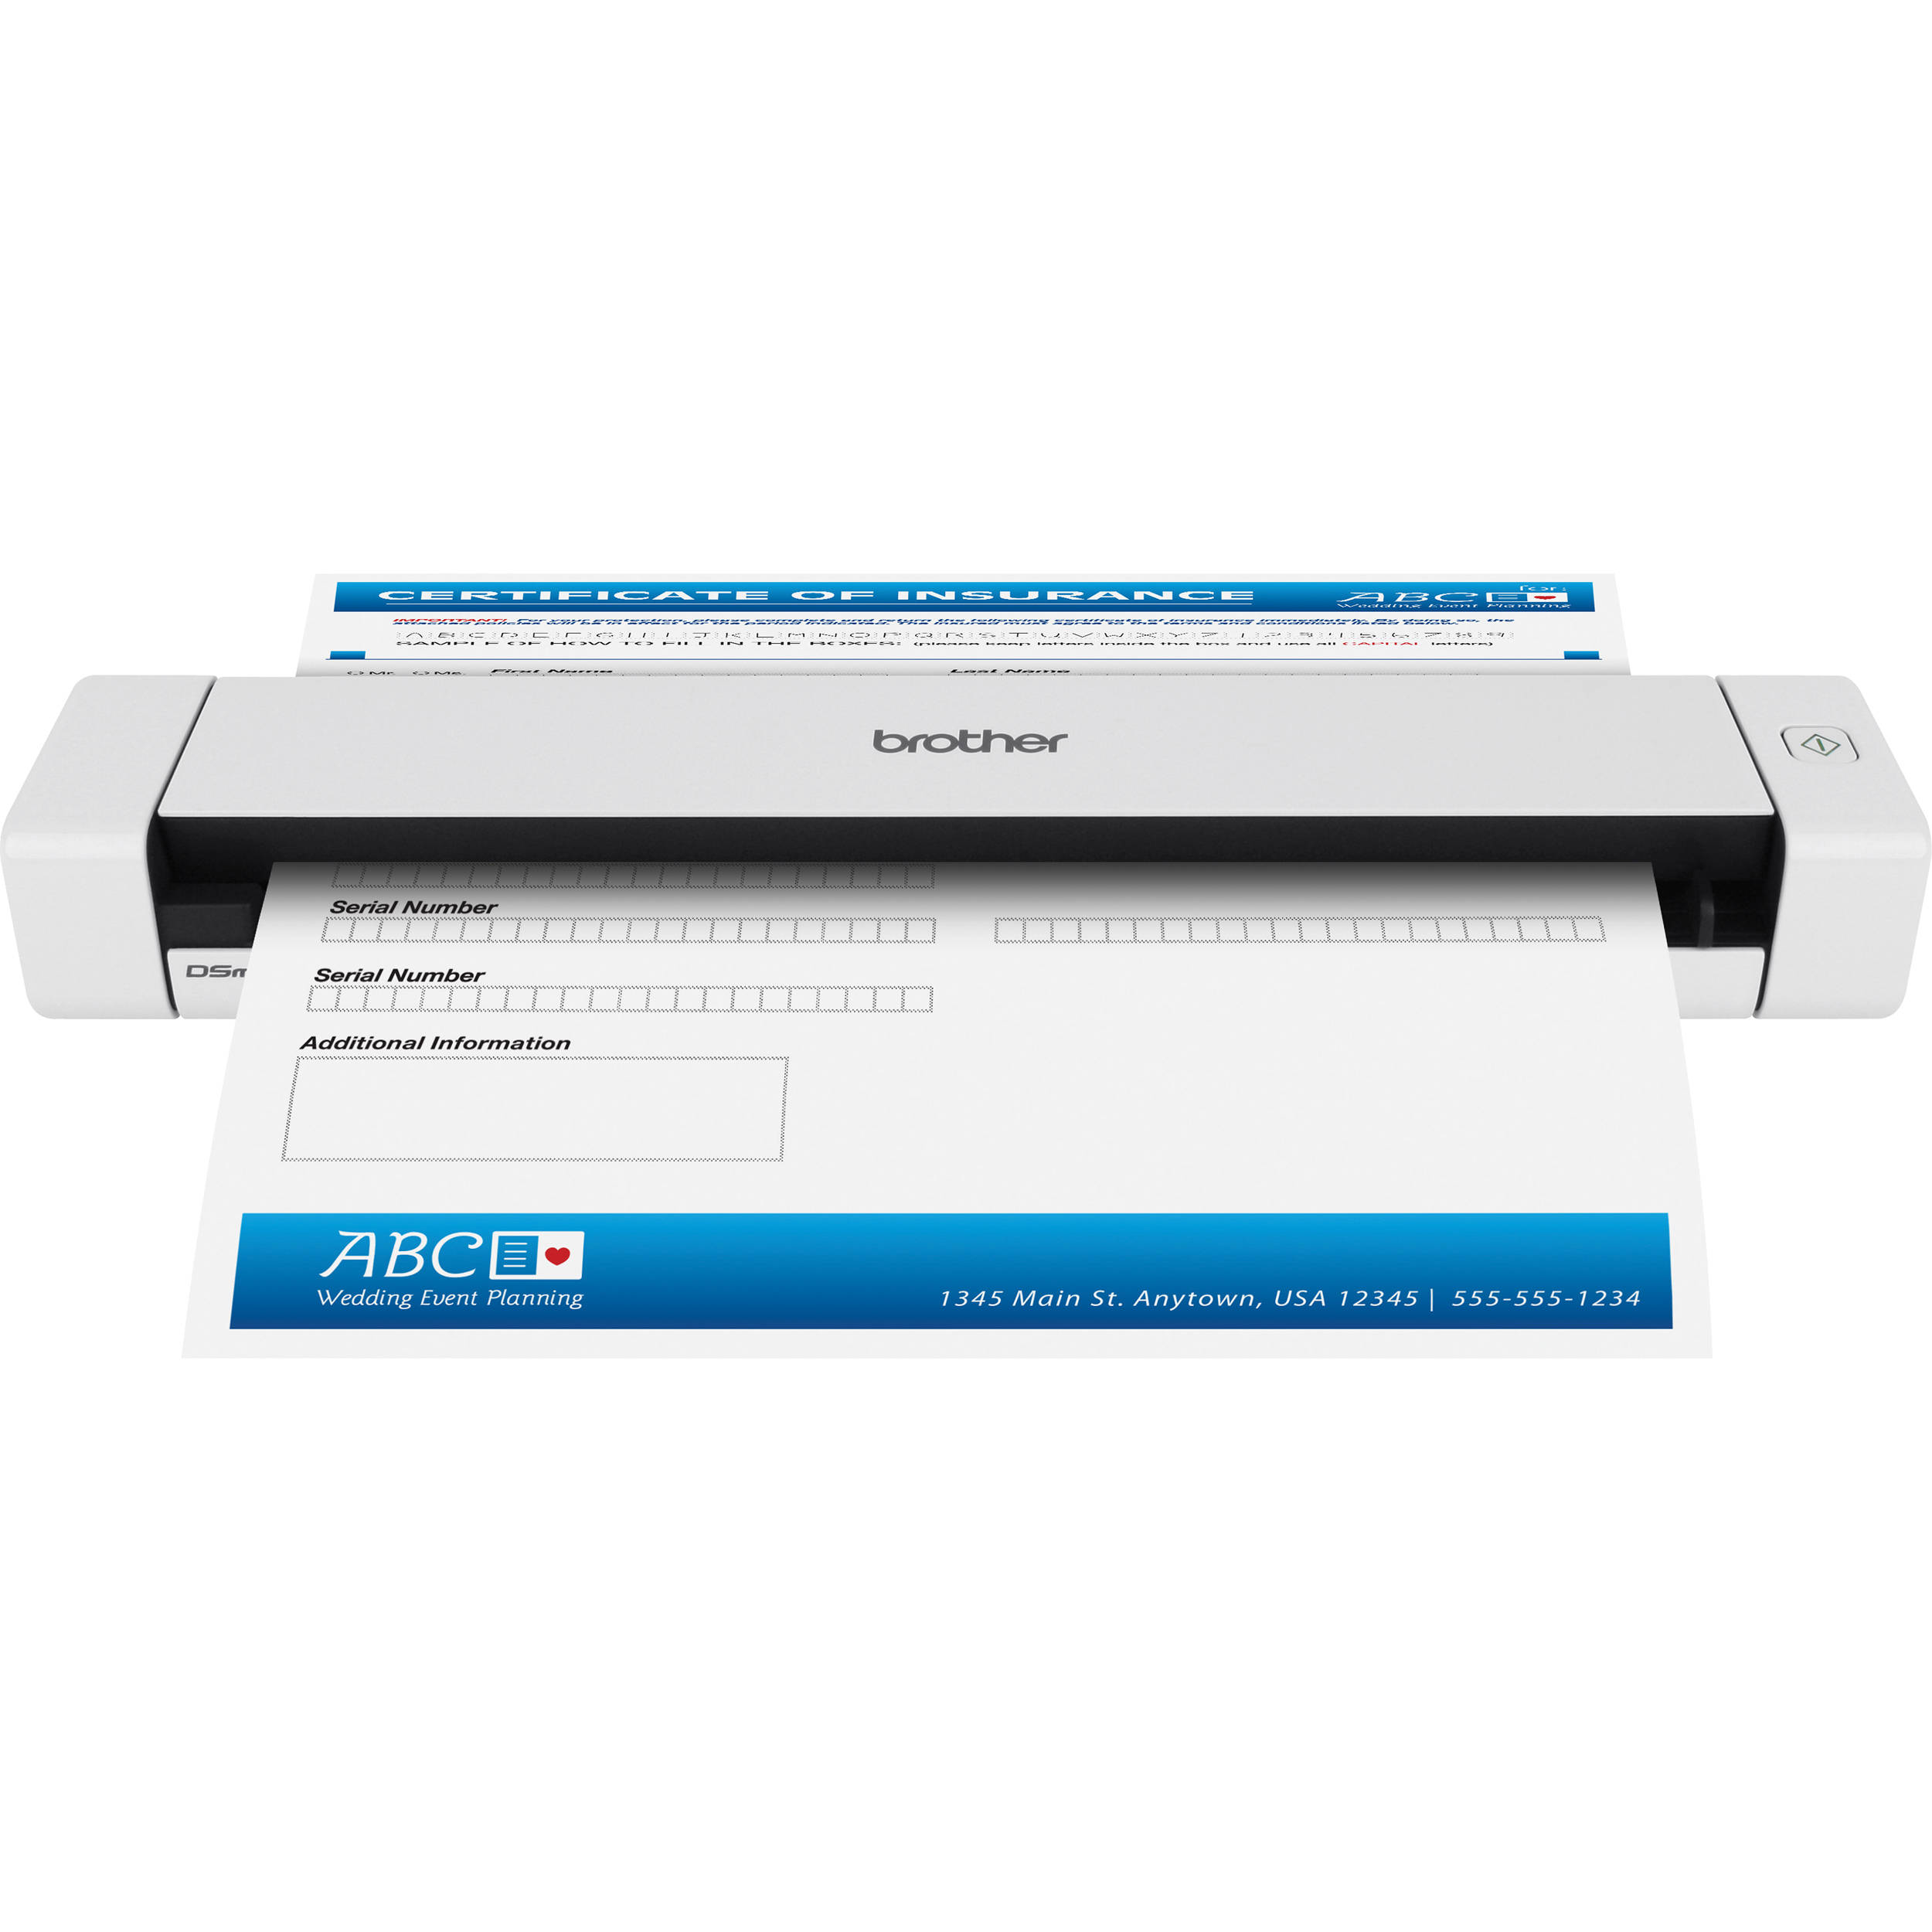 Brother Scanner ds620